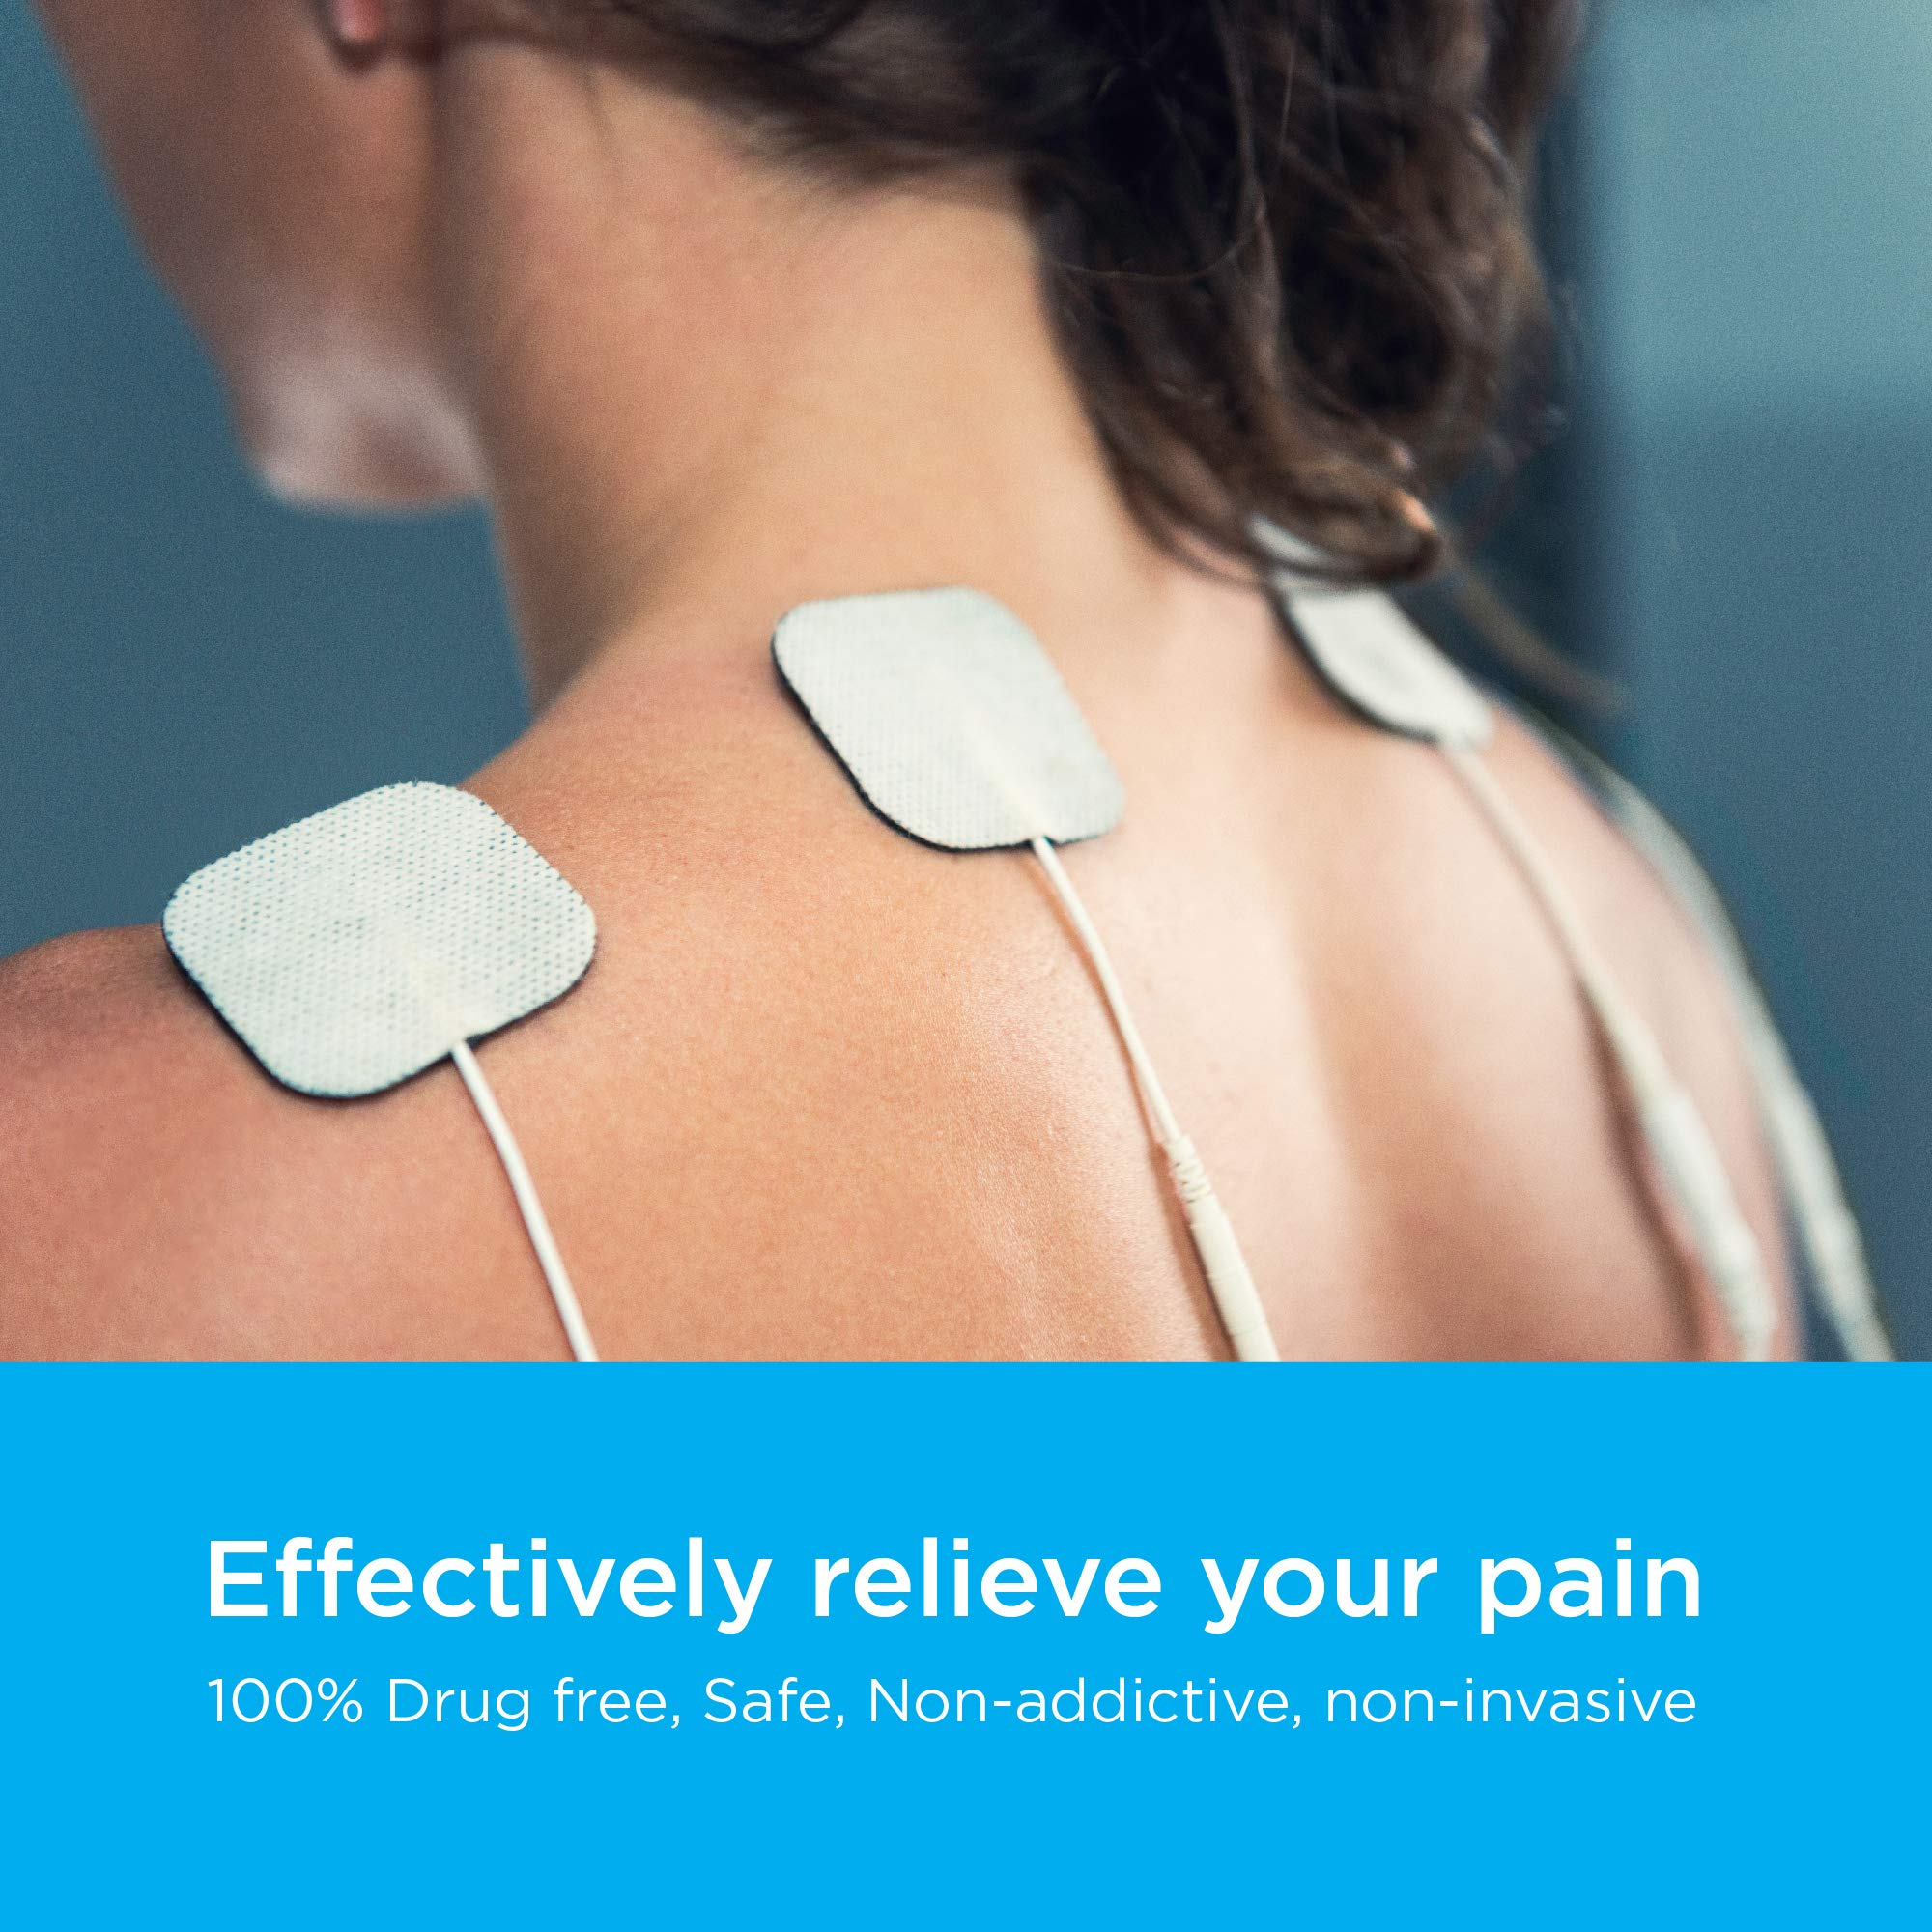 TENS Unit Pads Premium Multi Pack of Latex-Free, Non-Irritating Replacement Electrode Patches for Muscle Stimulation Massage Electrotherapy - 34pcs (2x2in Small, 2x4in XL, Pad Holders) by Cherished Life (Image #3)